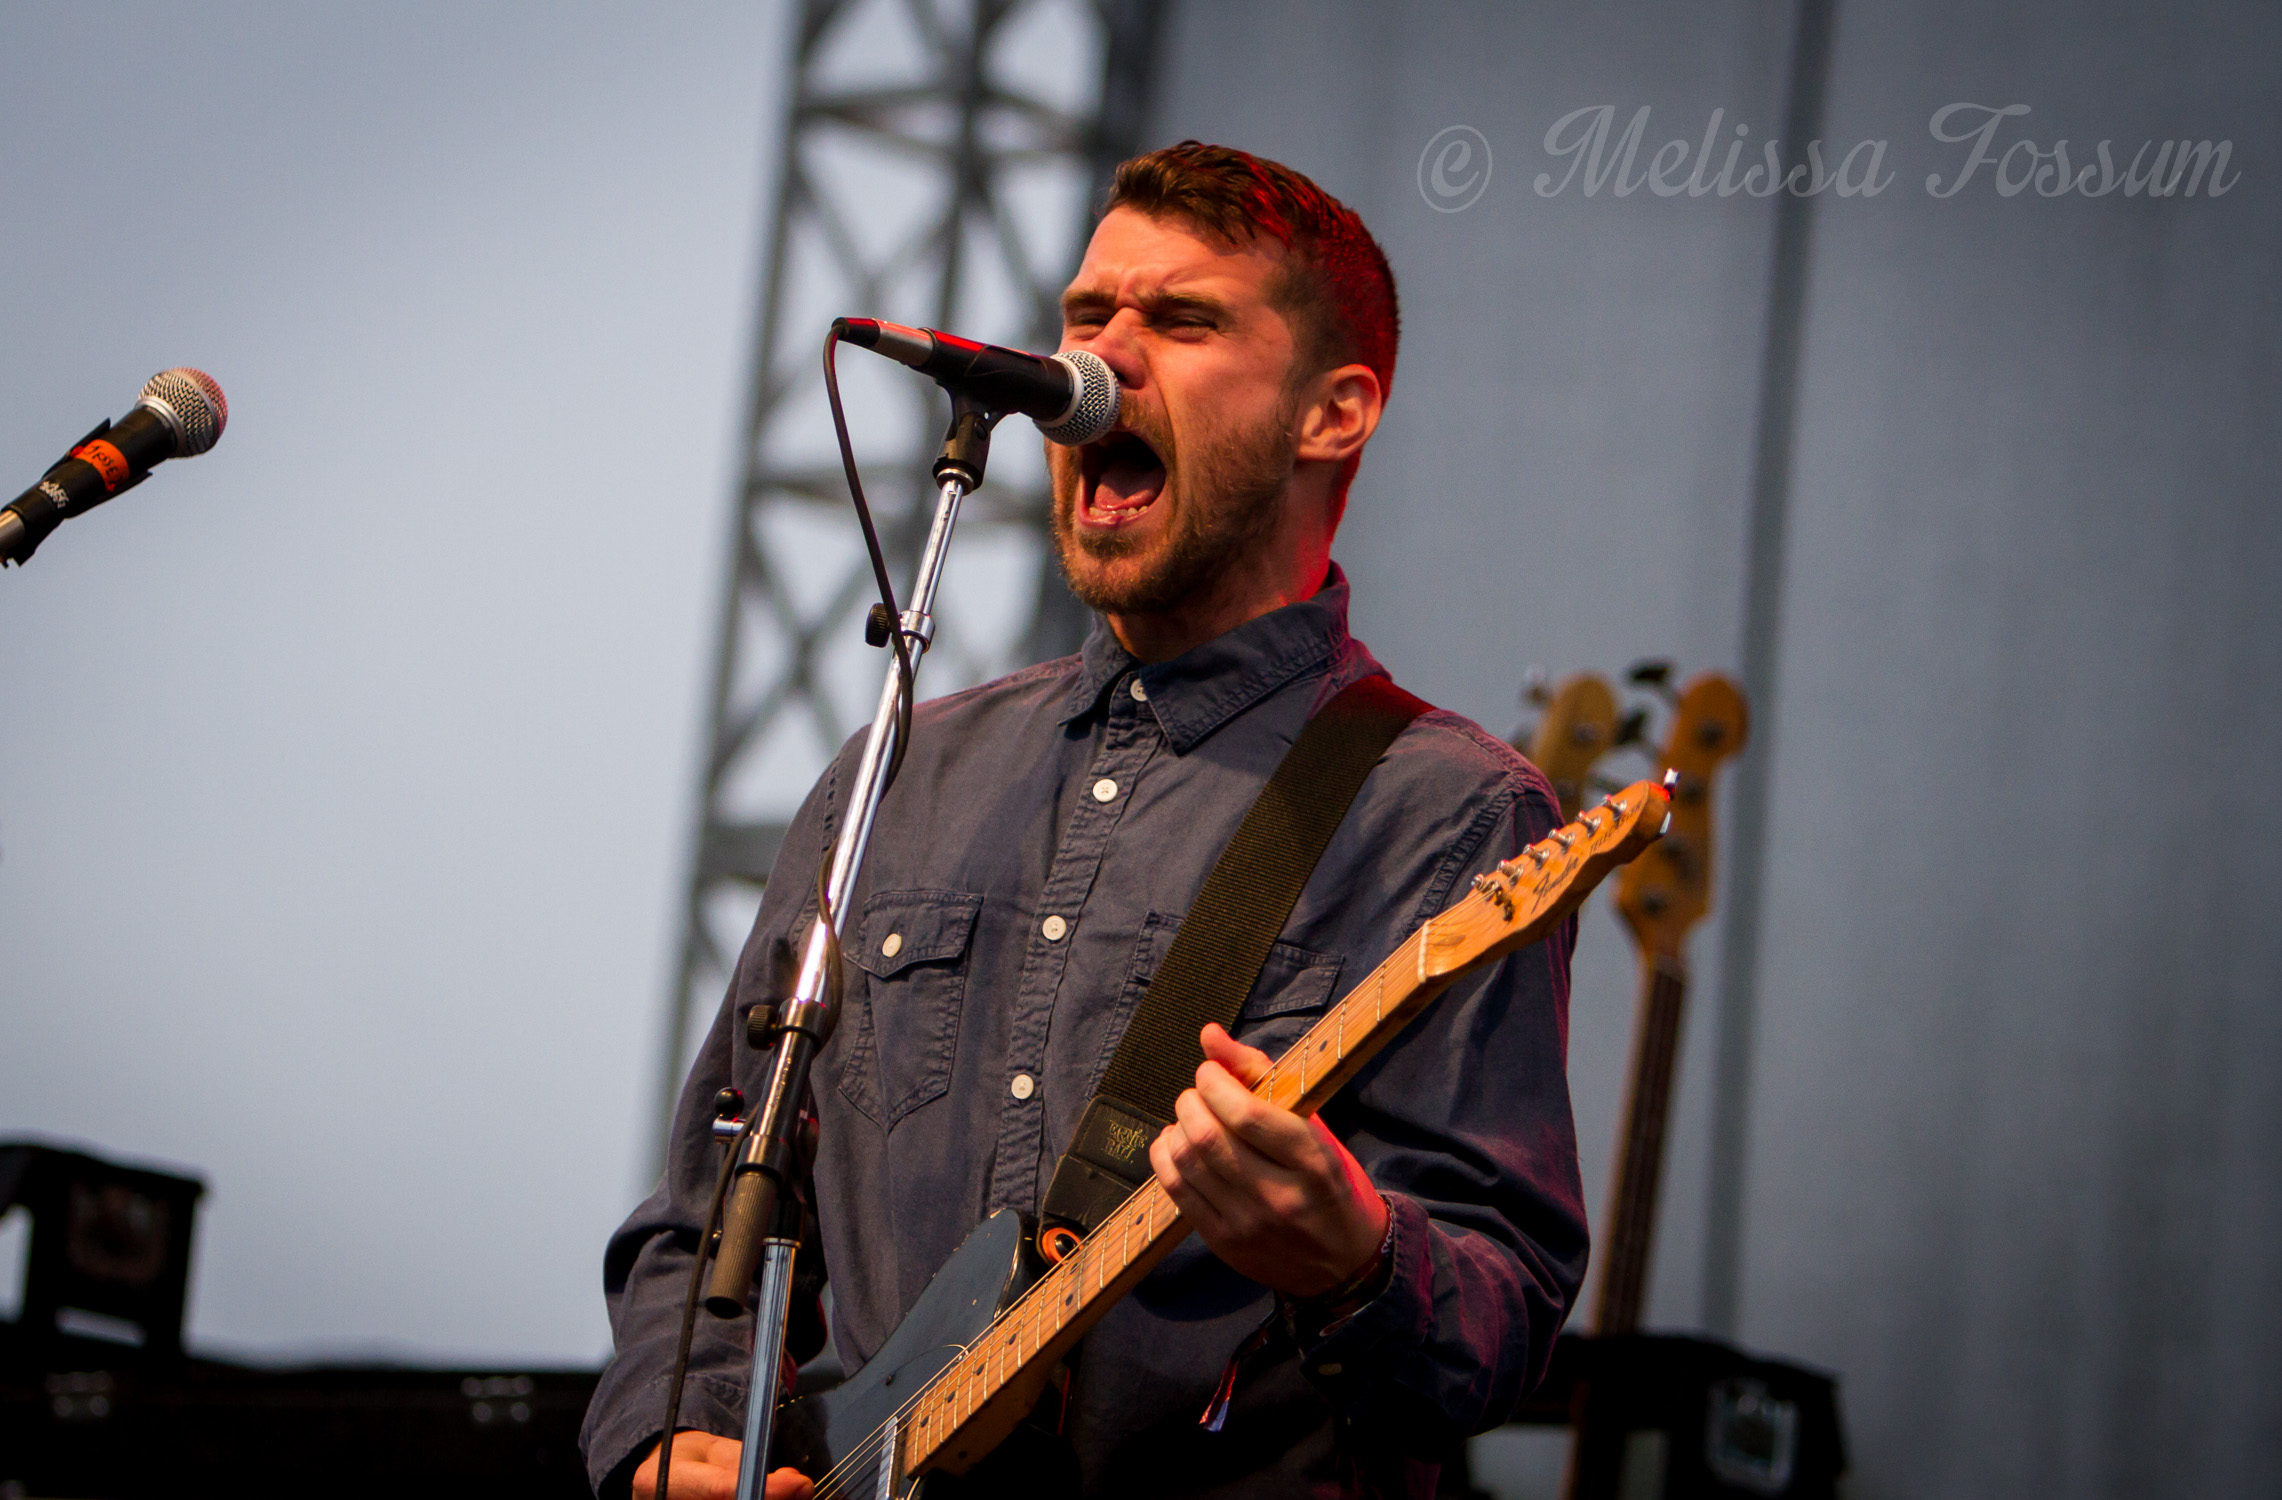 Brand New at Chicago Riot Fest: photo by Melissa Fossum